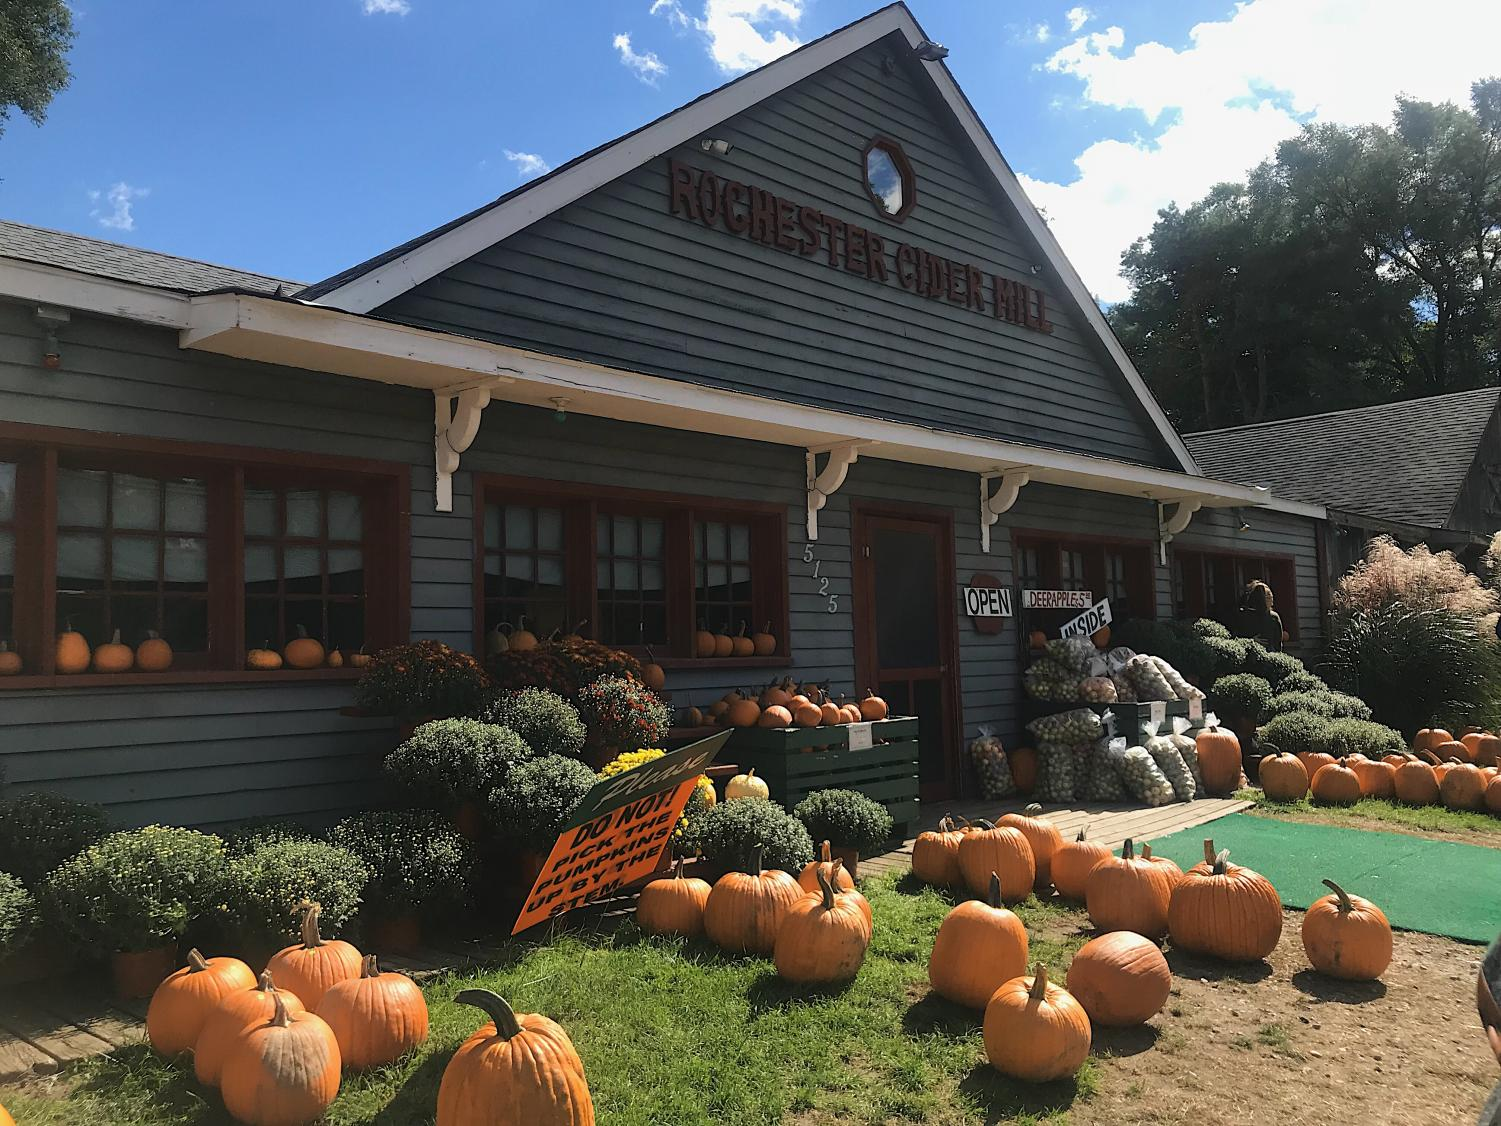 Rochester Cider Mill on Rochester Rd, Rochester. Rochester Cider Mill is decorated with pumpkins and is ready for fall.